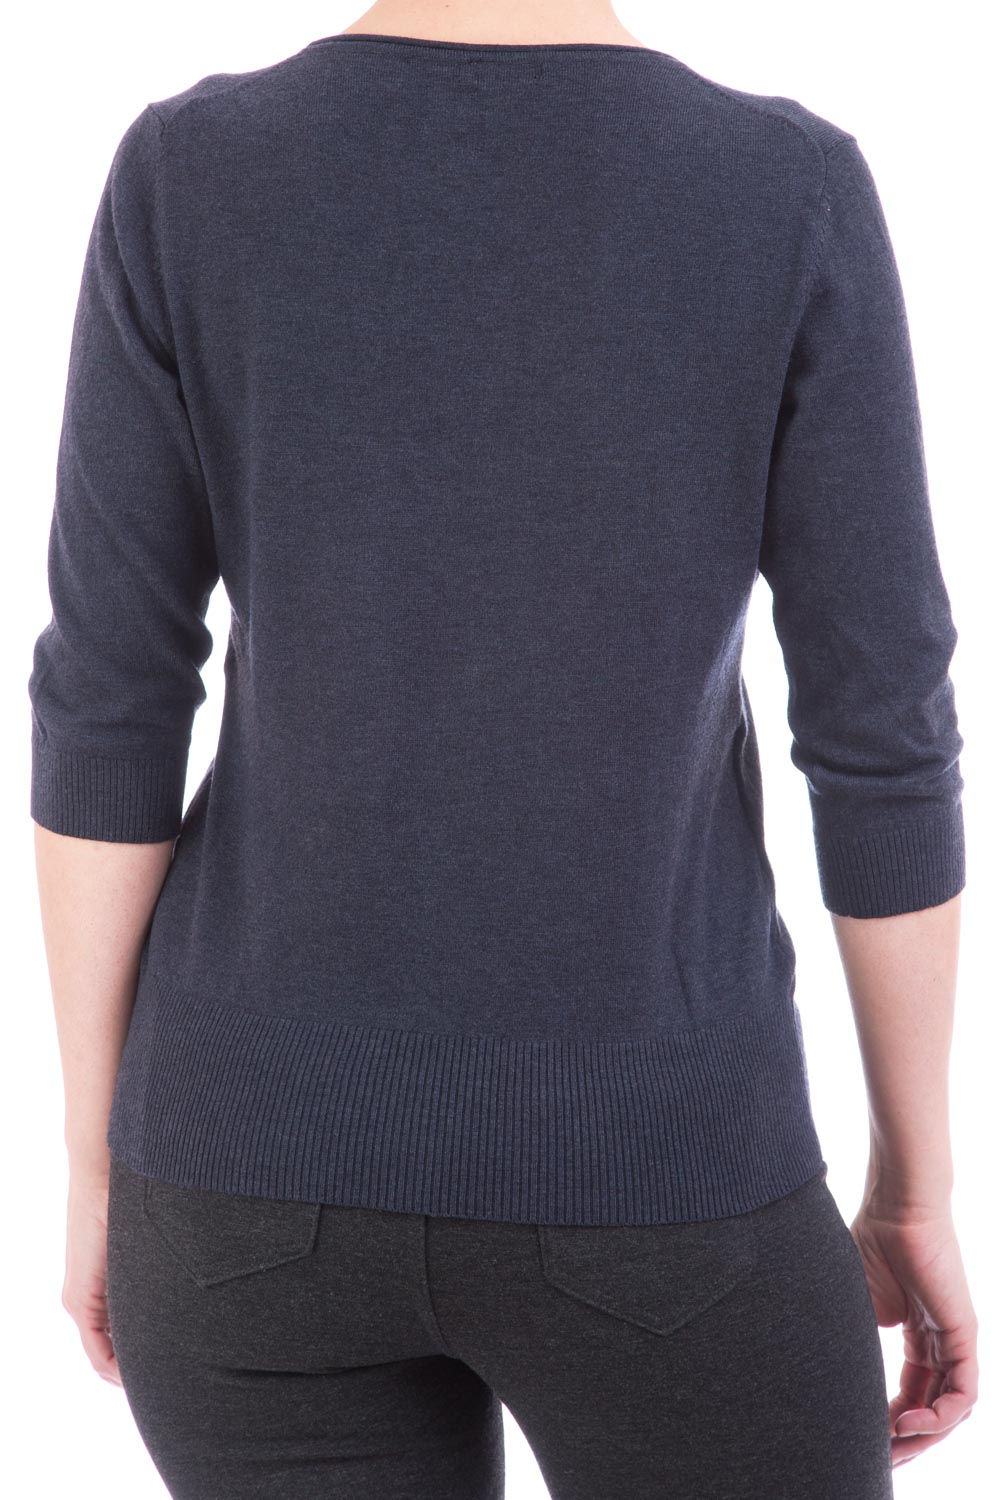 Type 2 Tendu Sweater